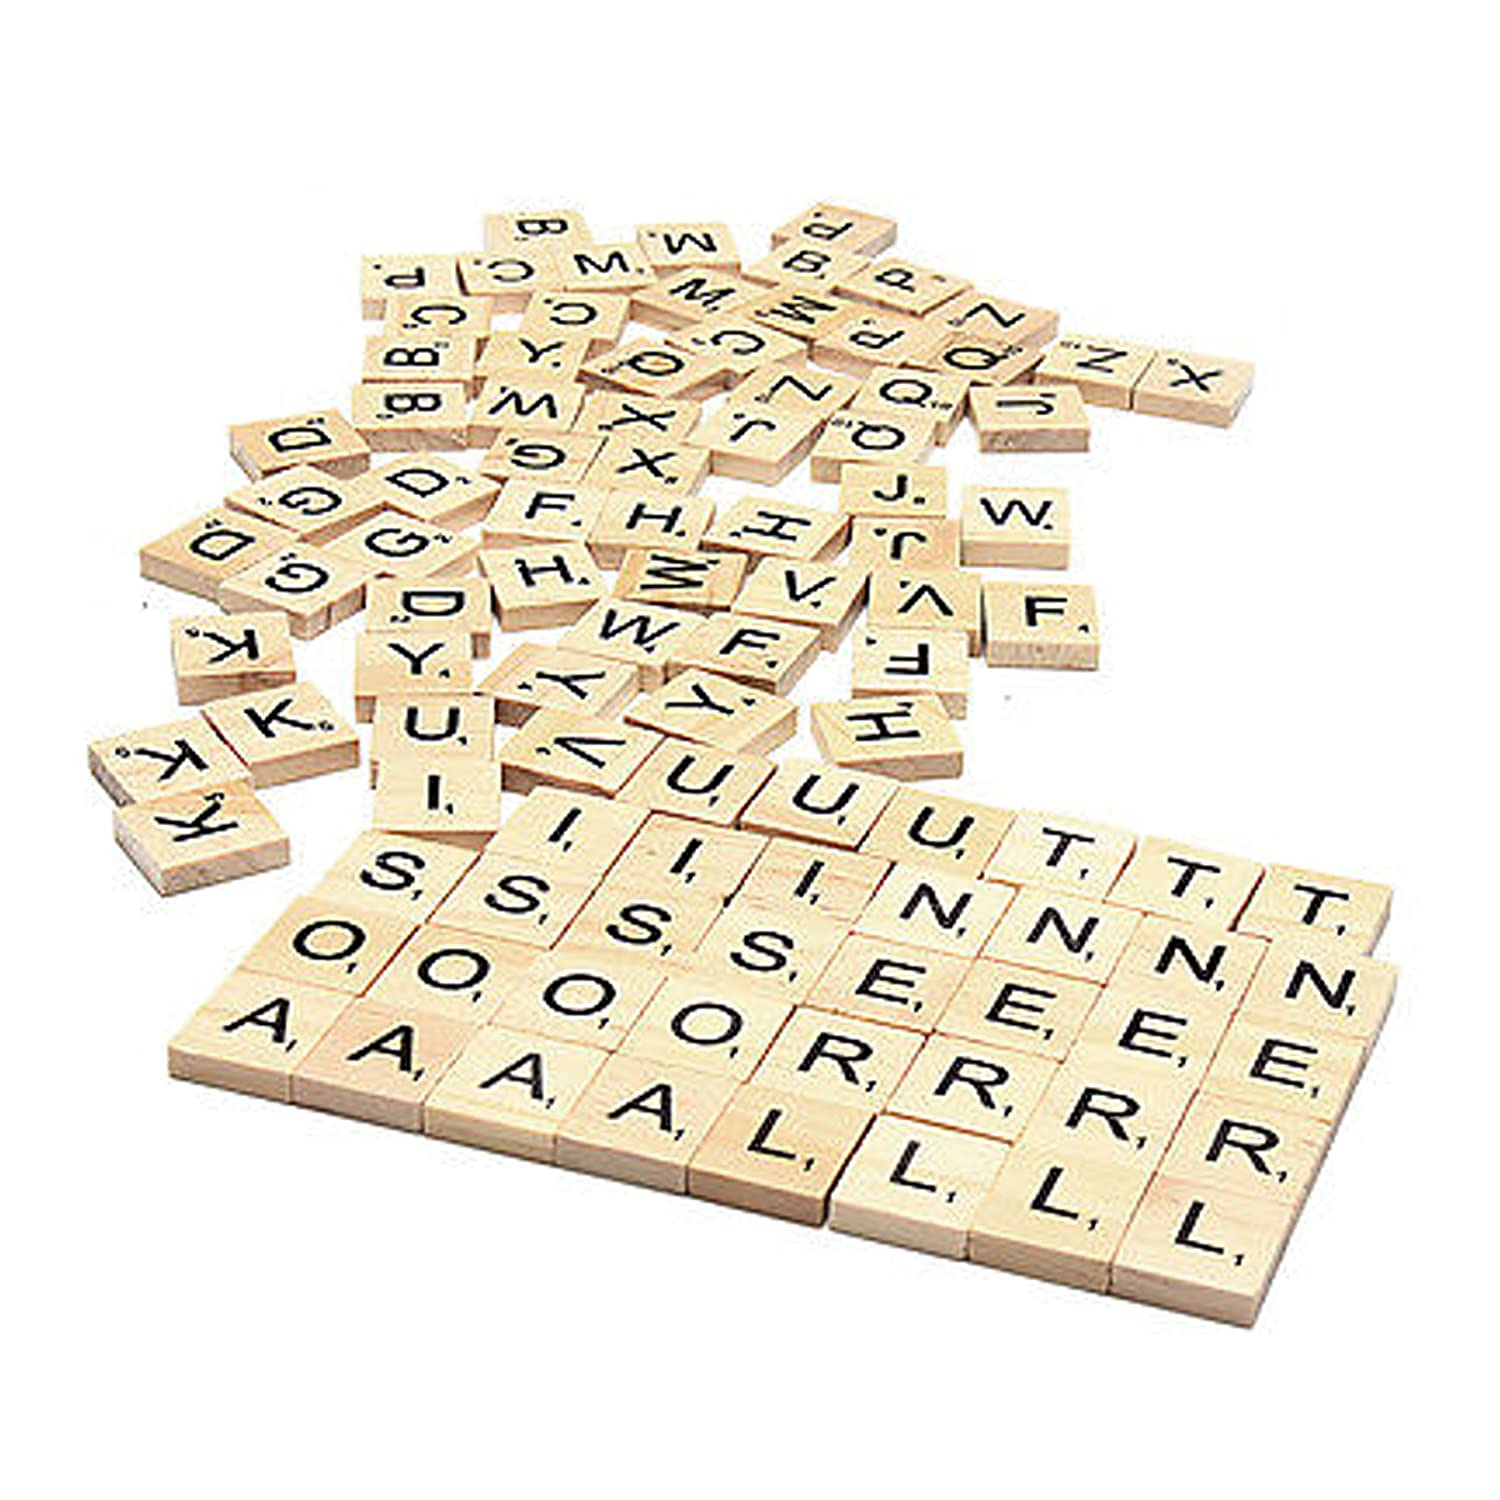 Set Of 200 Wooden Scrabble Letters Tiles For Wood Crafts Arts Crafts And Scrapbooking Embellishments By Wedding Decor